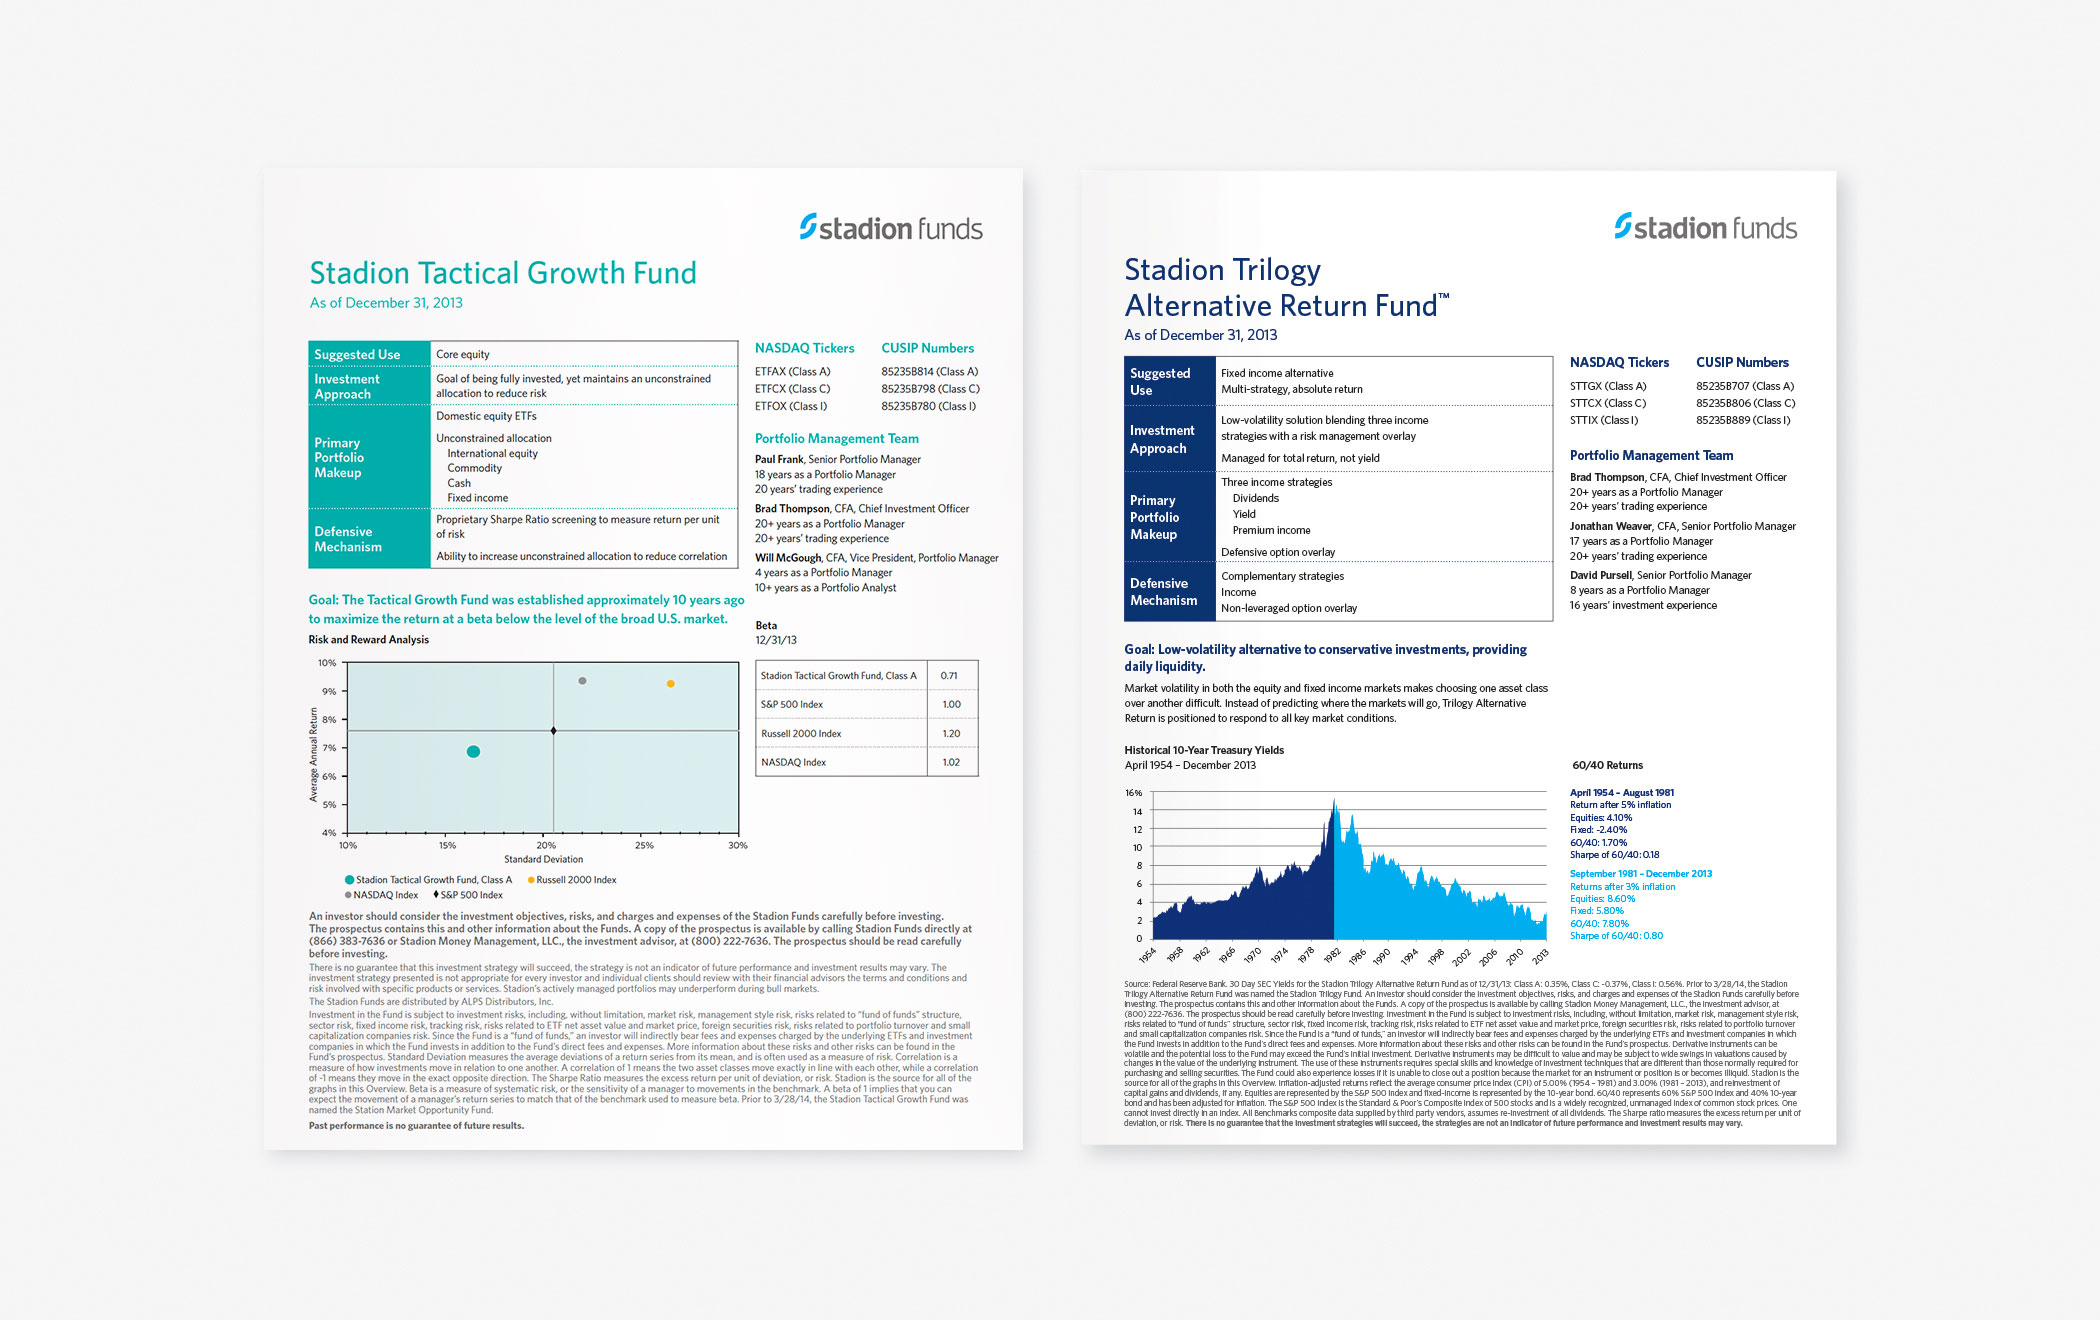 Fact sheets for the Stadion Tactical Growth Fund and Trilogy Alternative Return Fund.